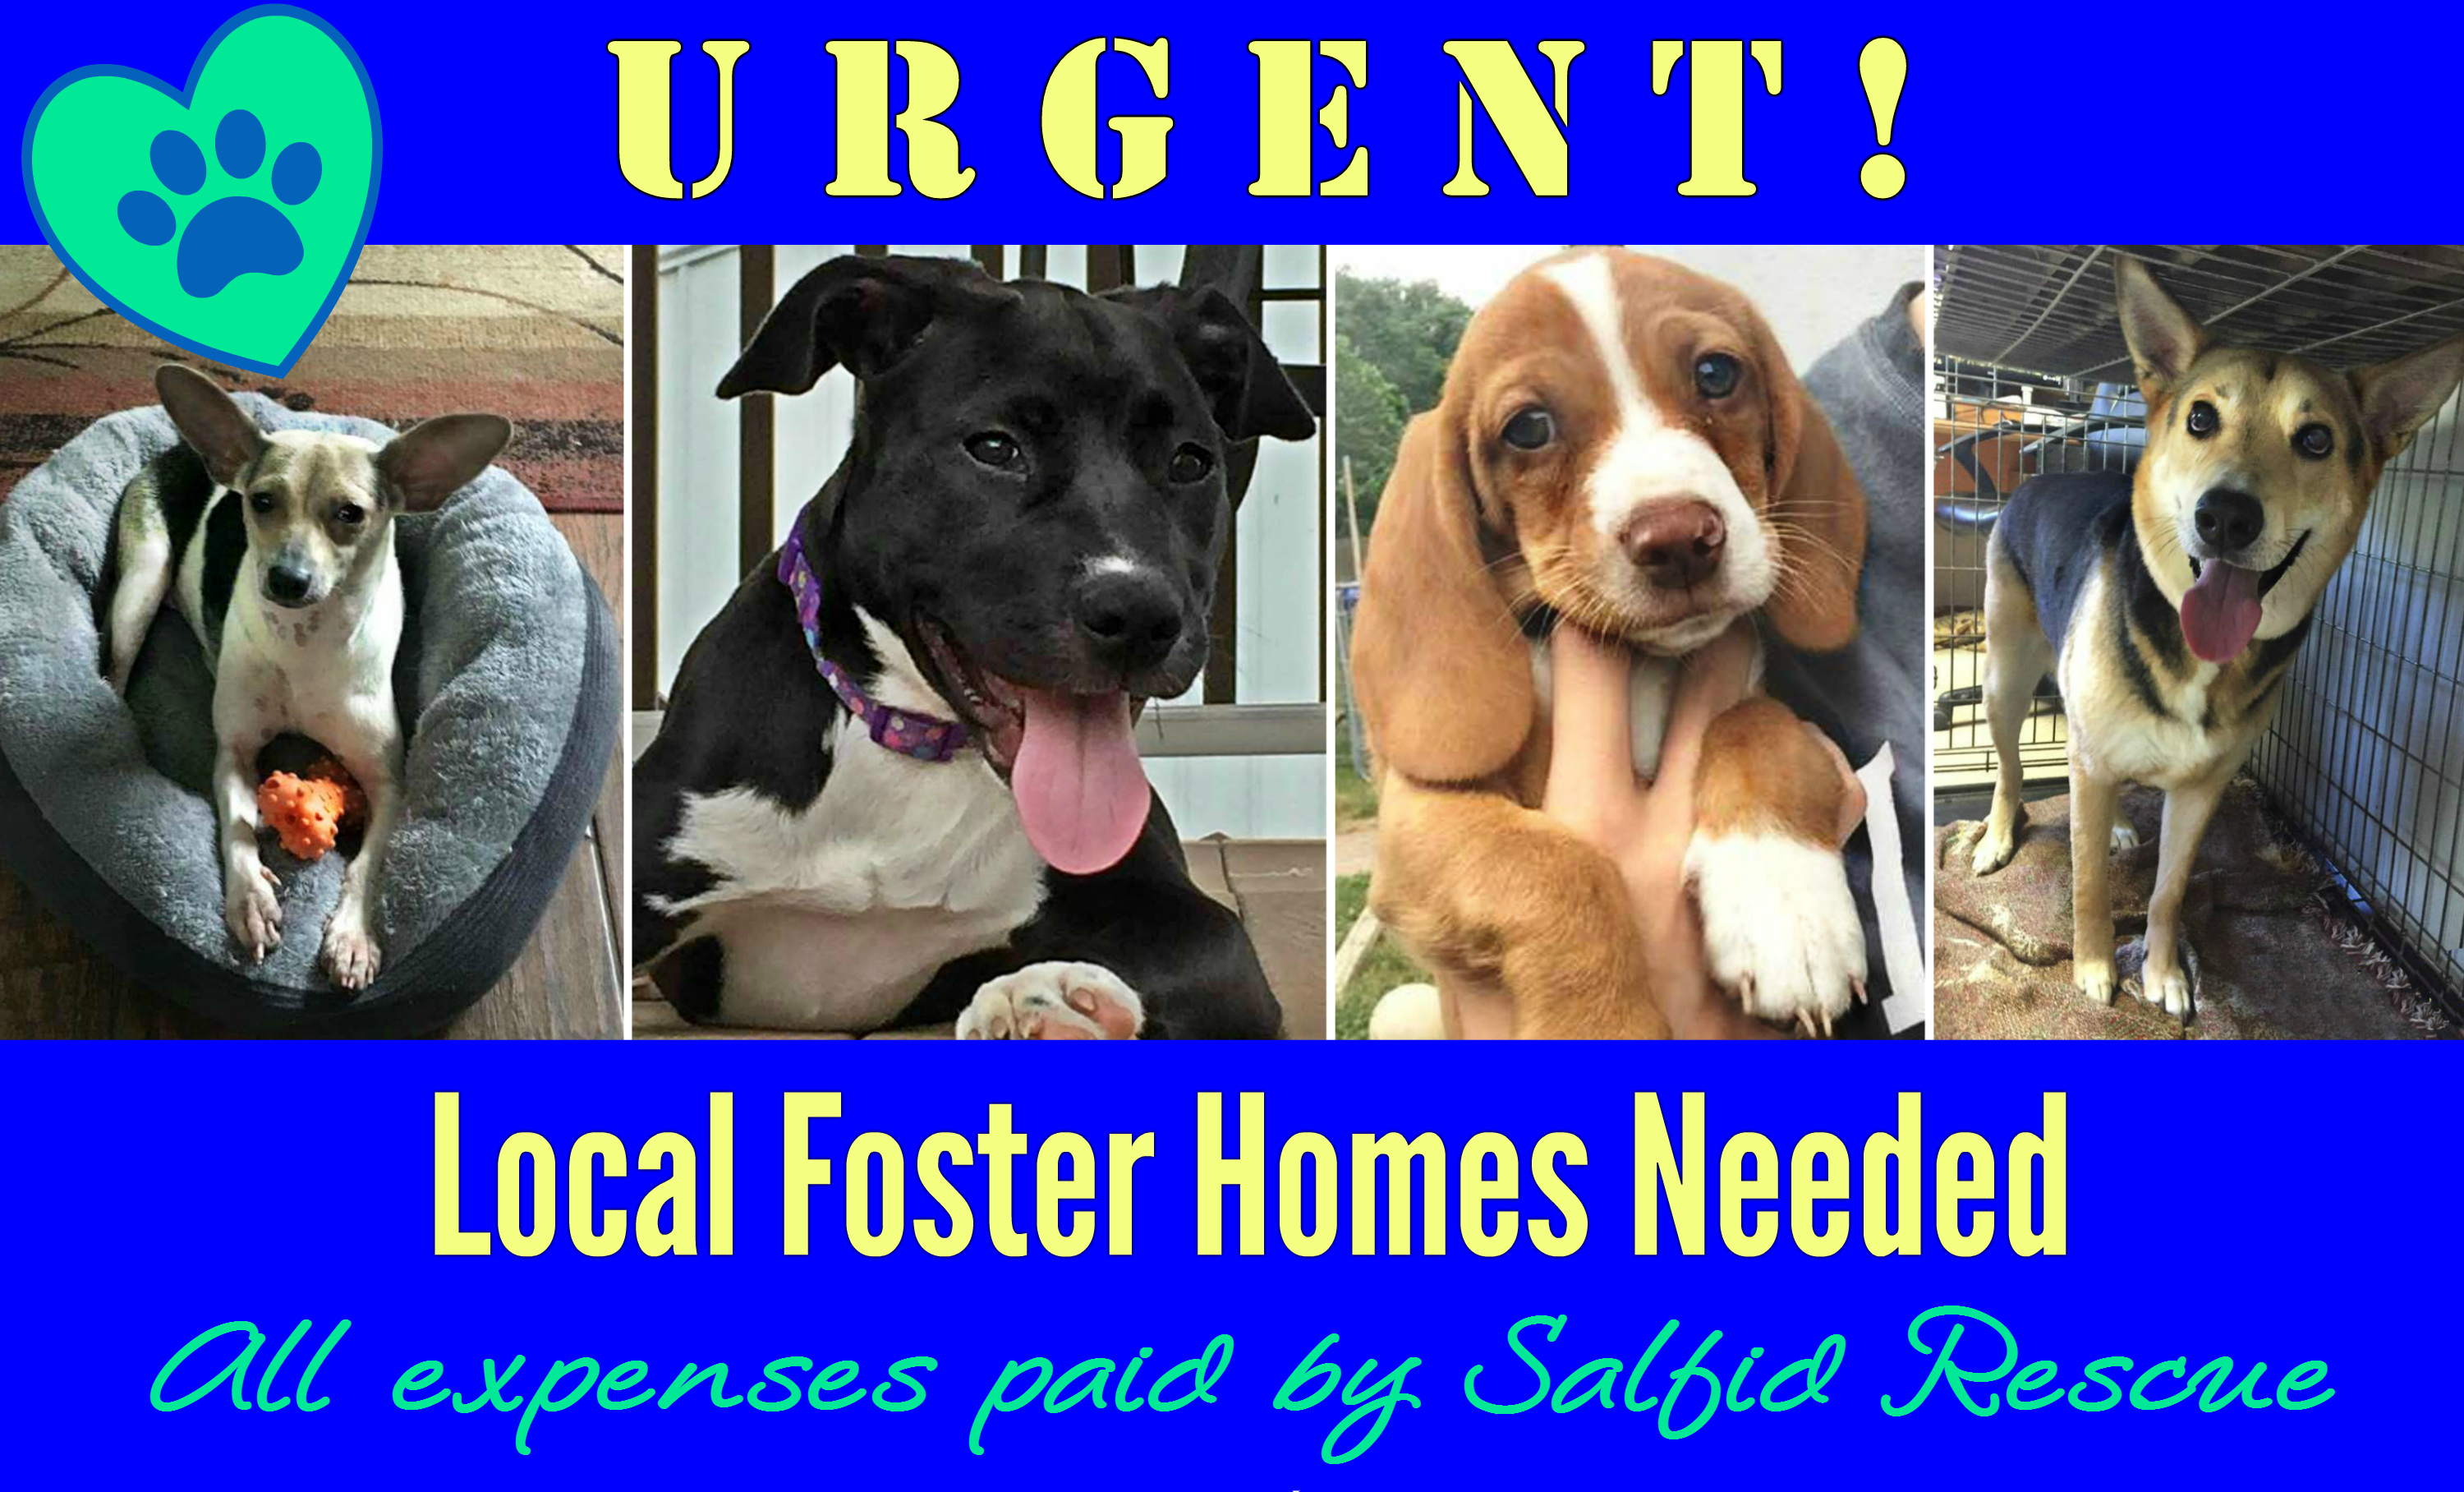 foster homes needed east falls local